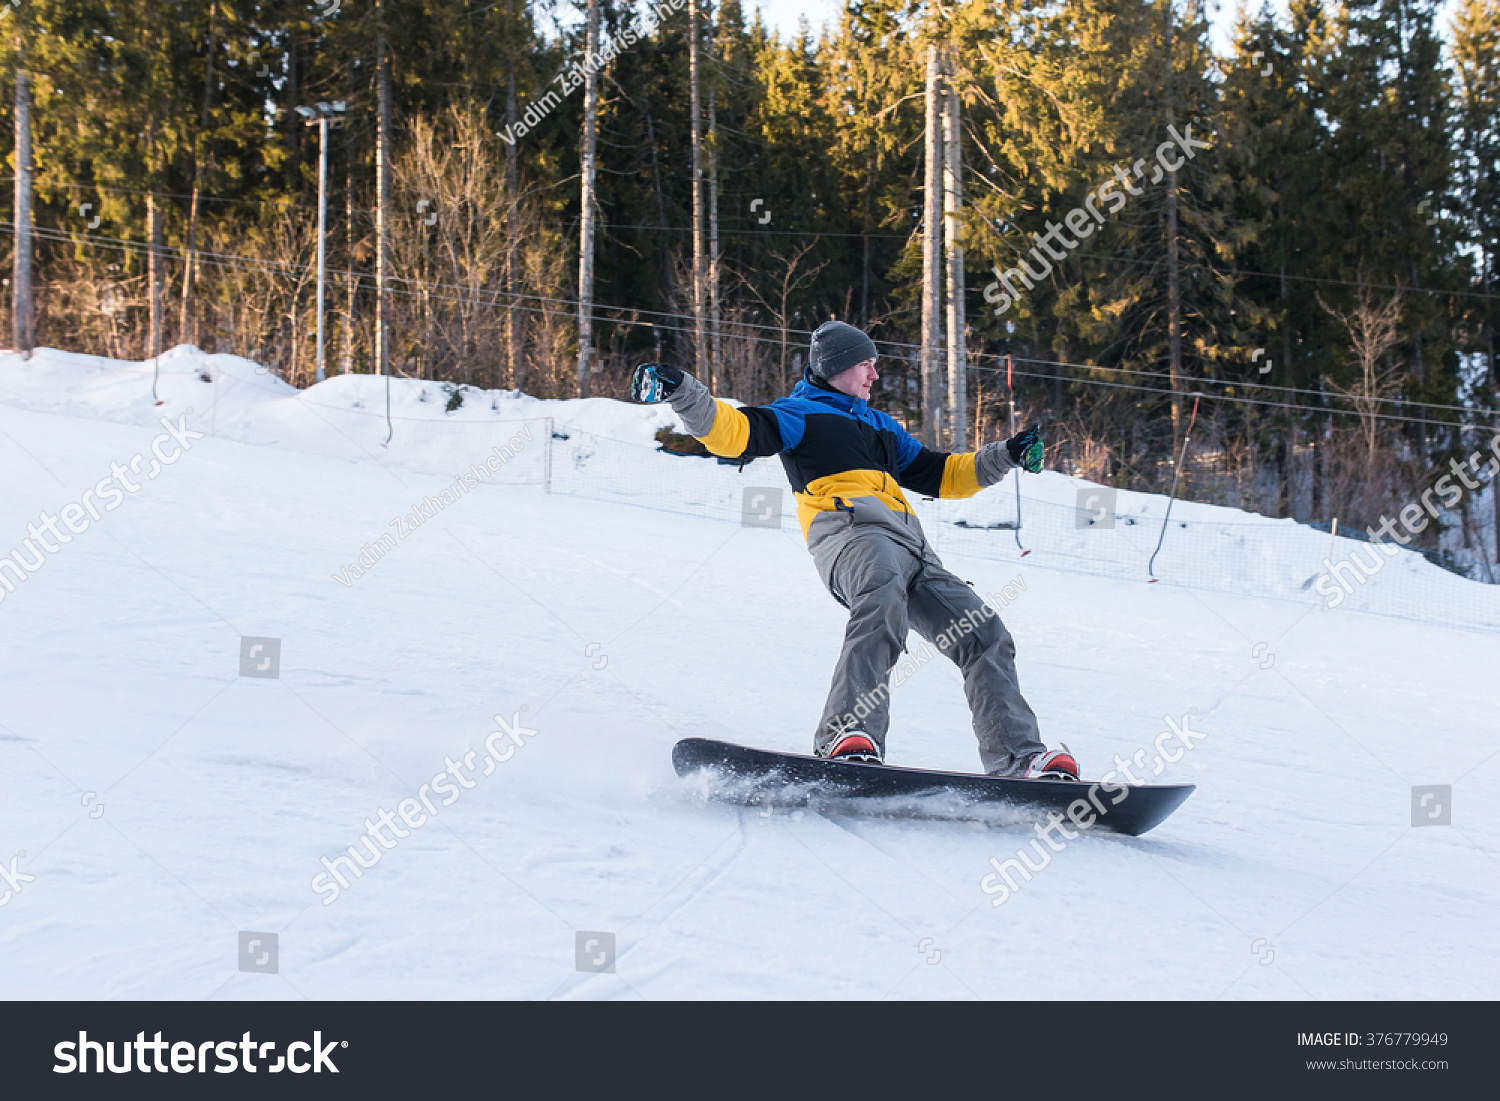 7812dac5a4d Male snowboarder laying turns on the ski slope snowboarder coming jpg  1500x1101 Snowboard laying down